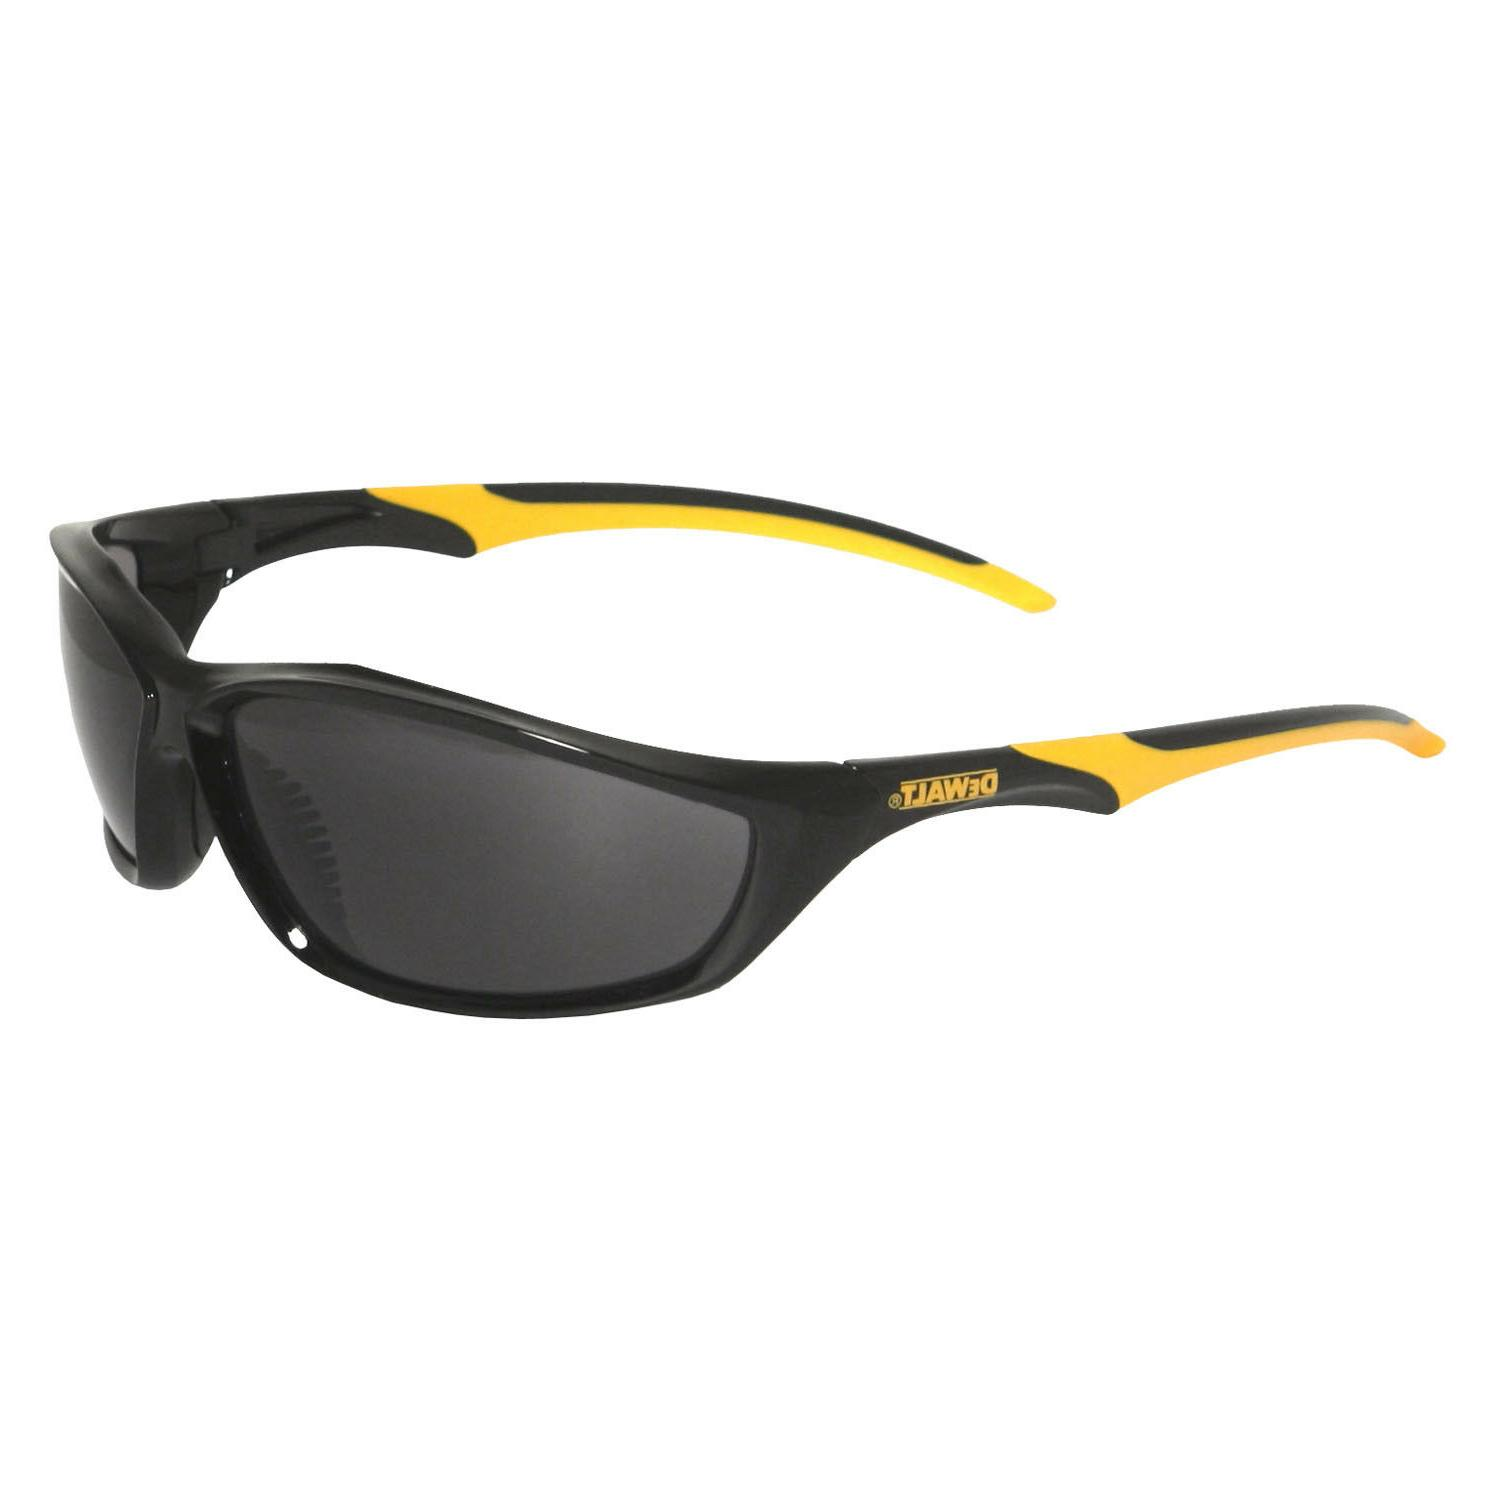 dpg96 2 router safety glasses smoke lens